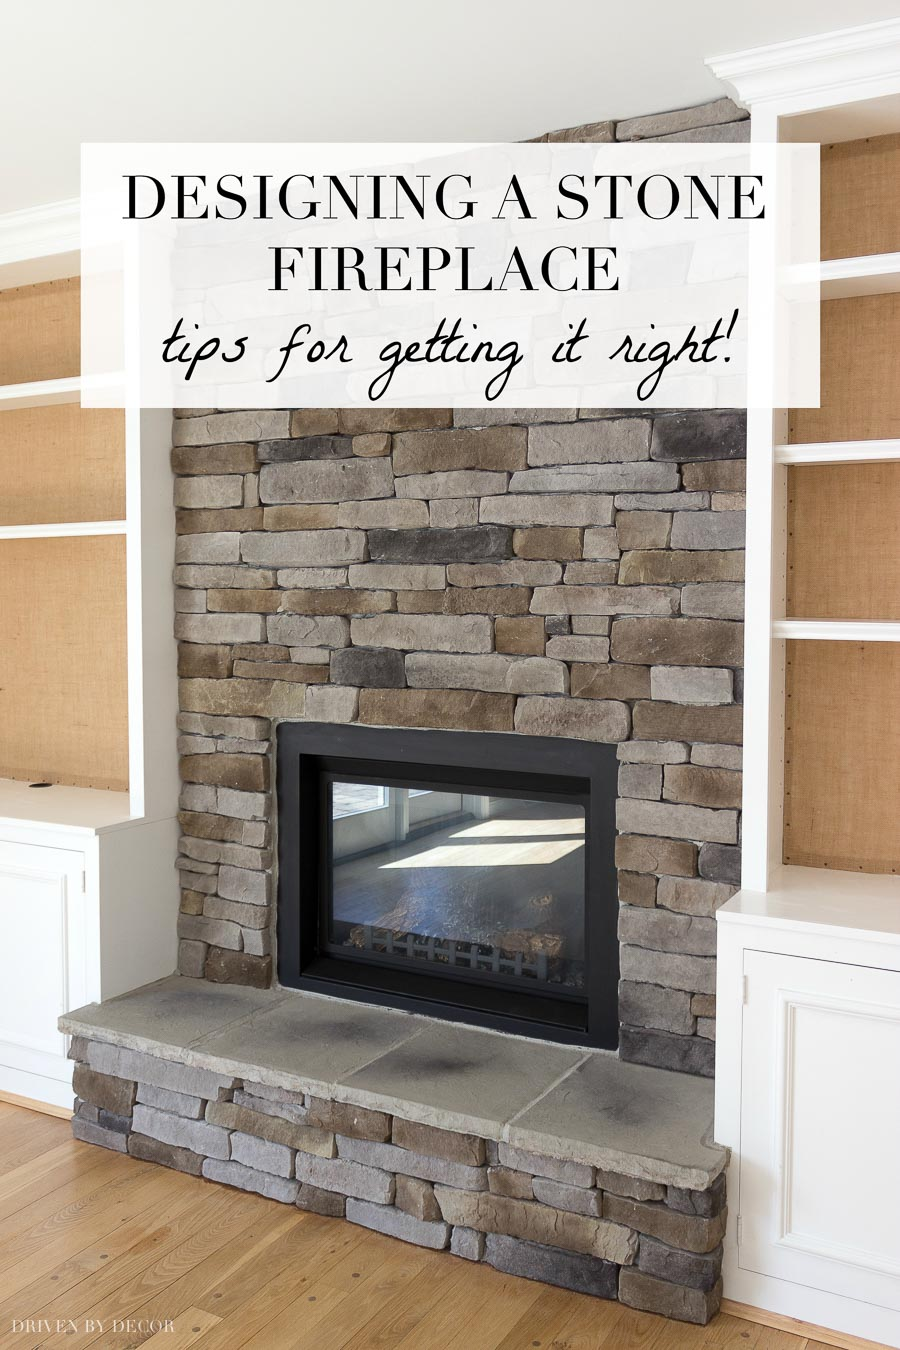 How To Decorate A Brick Fireplace Designing A Stone Fireplace Tips For Getting It Right Driven